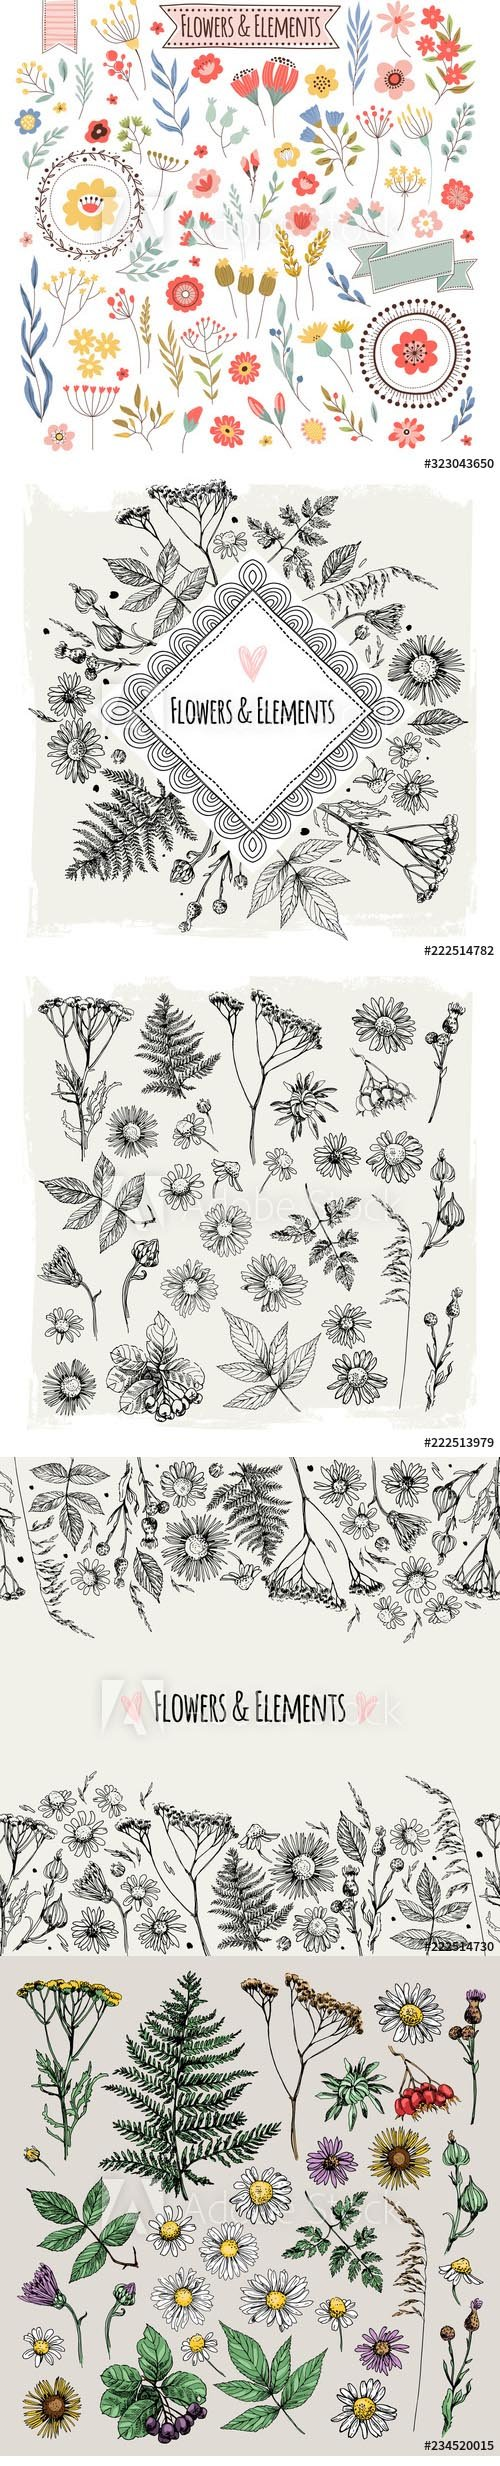 Vector Set of illustrations of plants and flowers